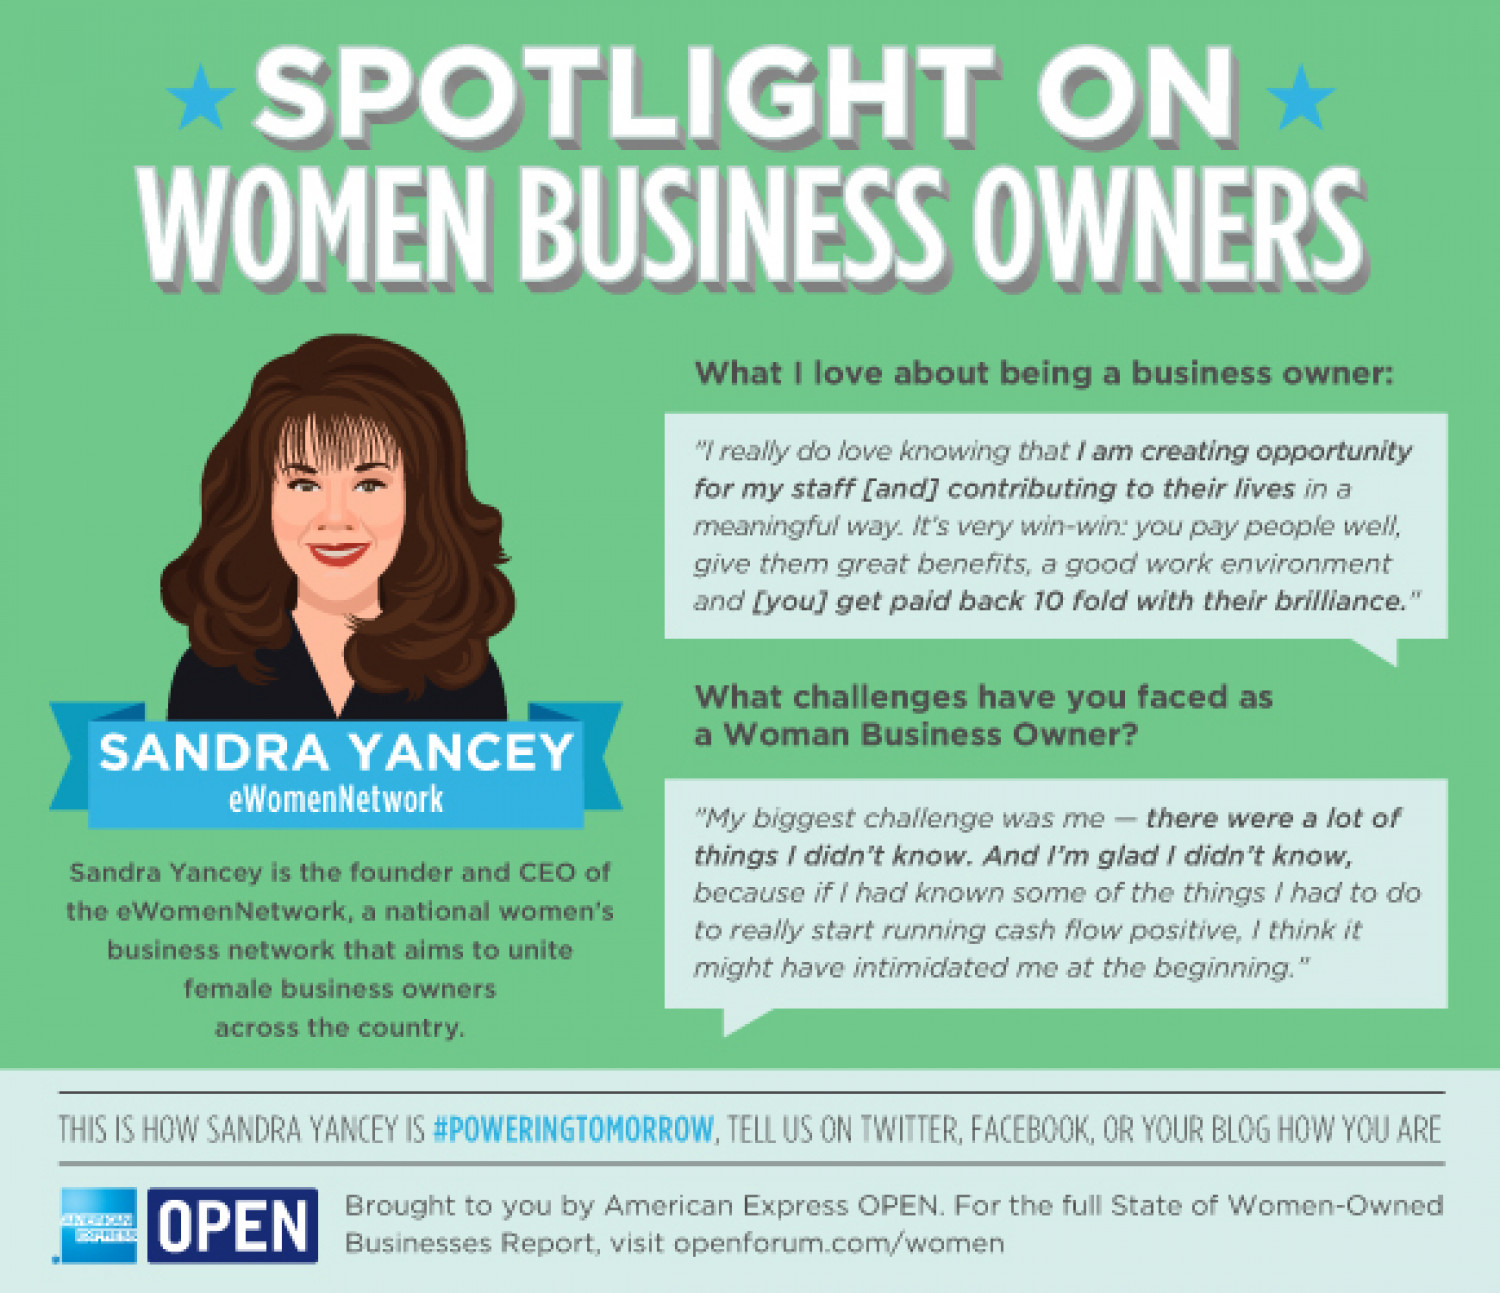 Spotlight on Women Business Owners: Sandra Yancey Infographic